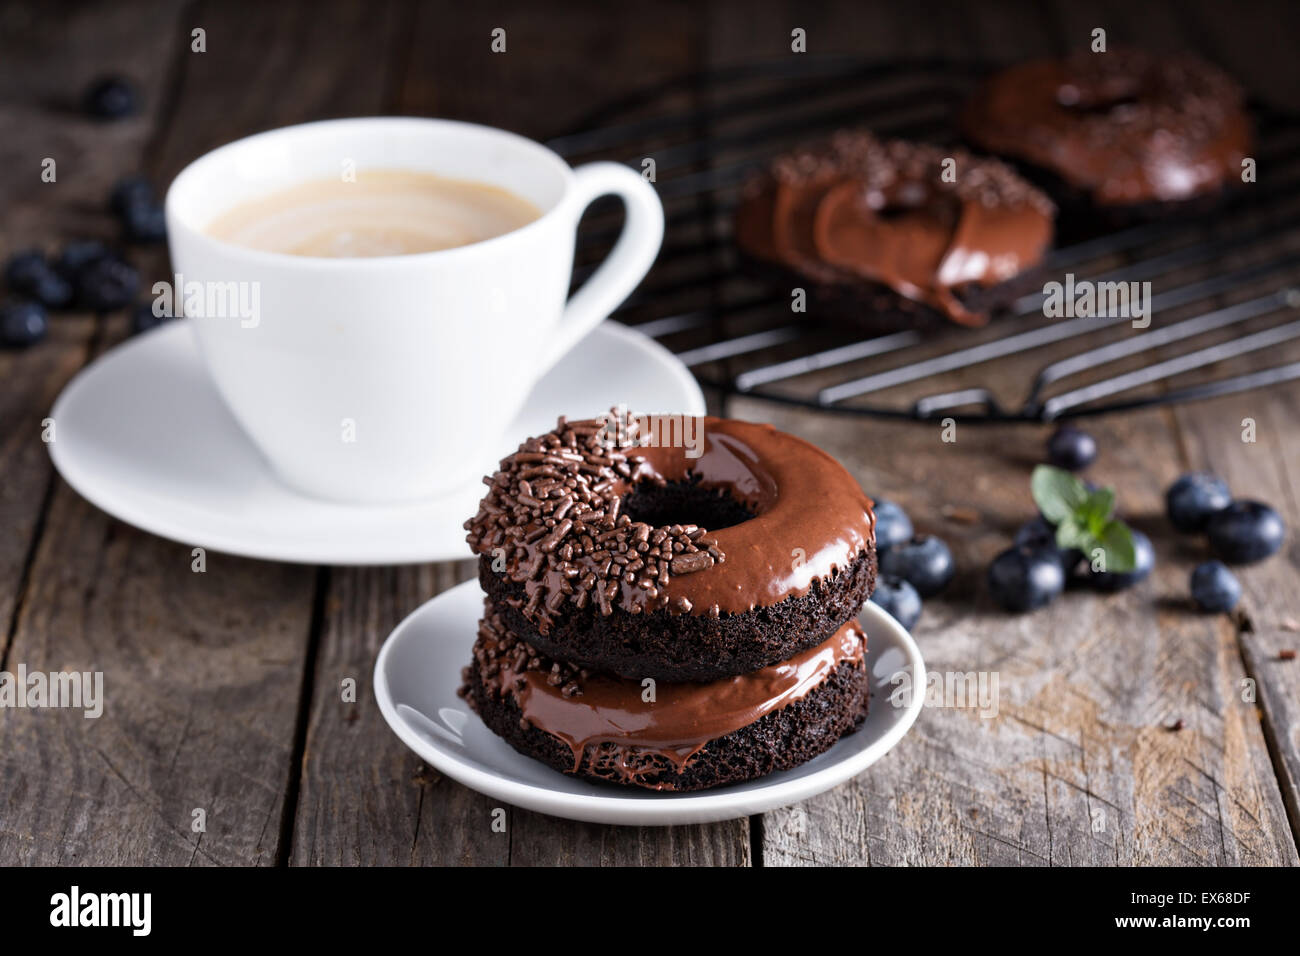 Chocolate gluten free donuts with coffee and blueberries - Stock Image